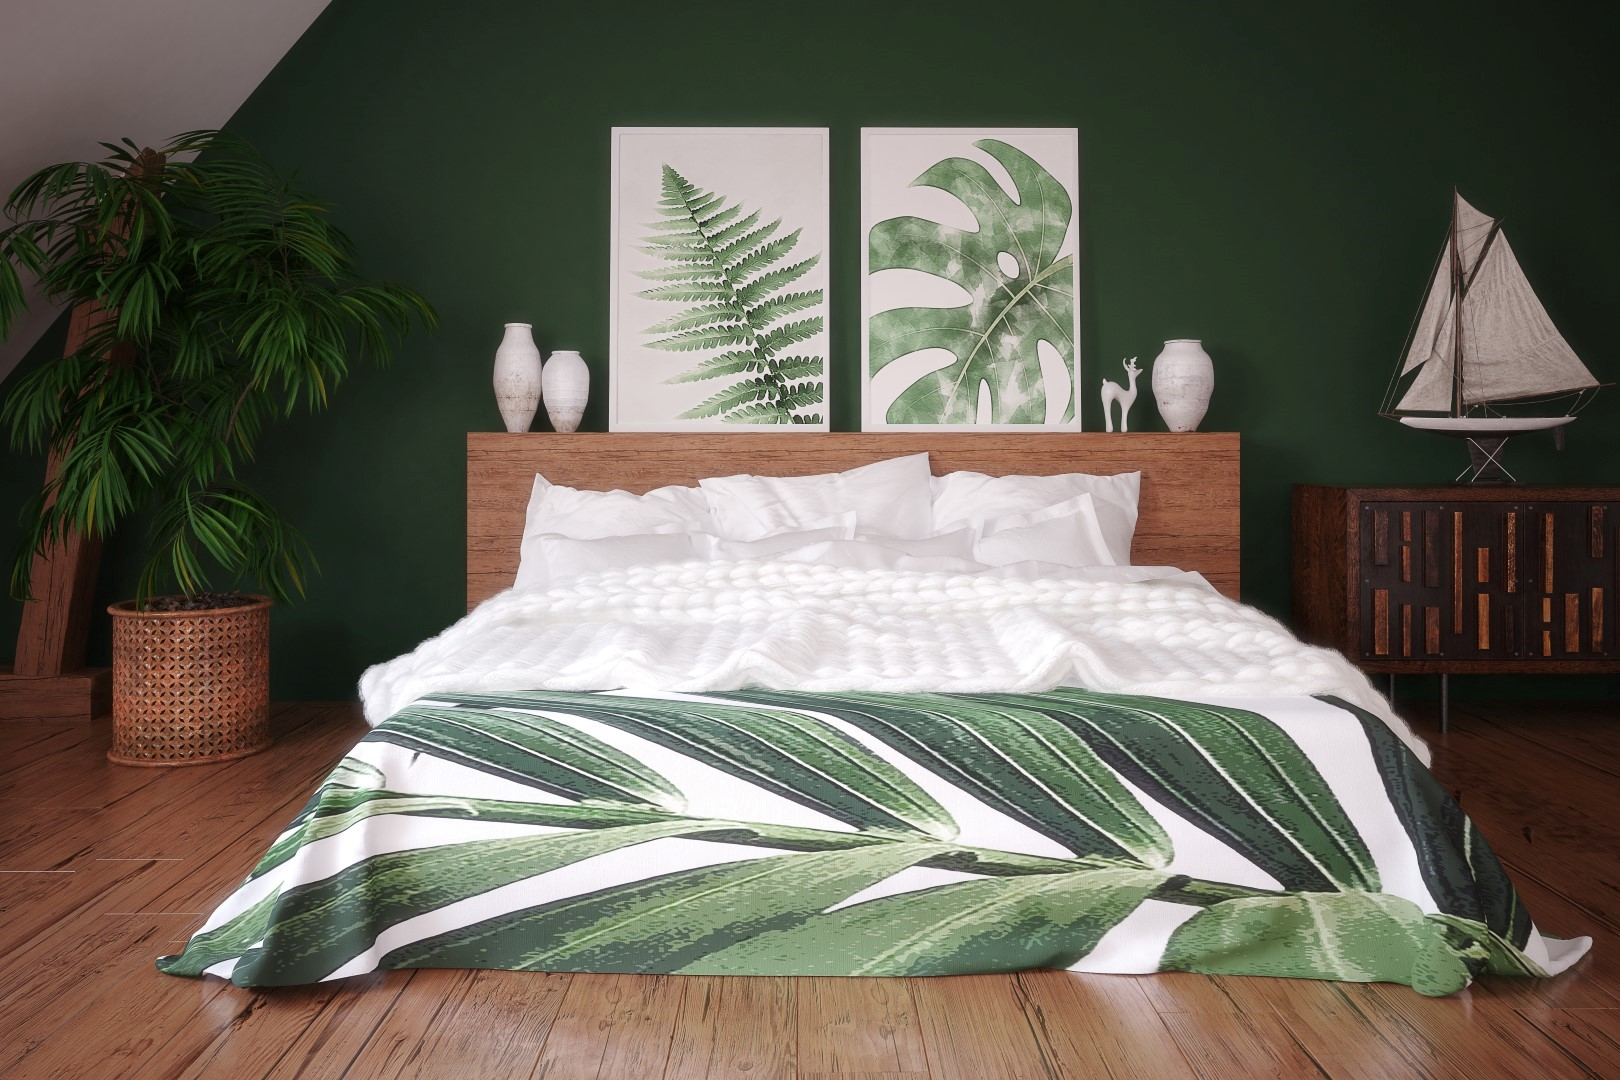 Autumn Decorating Ideas Bedroom: Bedroom Decorating Ideas: 20 Must-See Styles For Your Bedroom